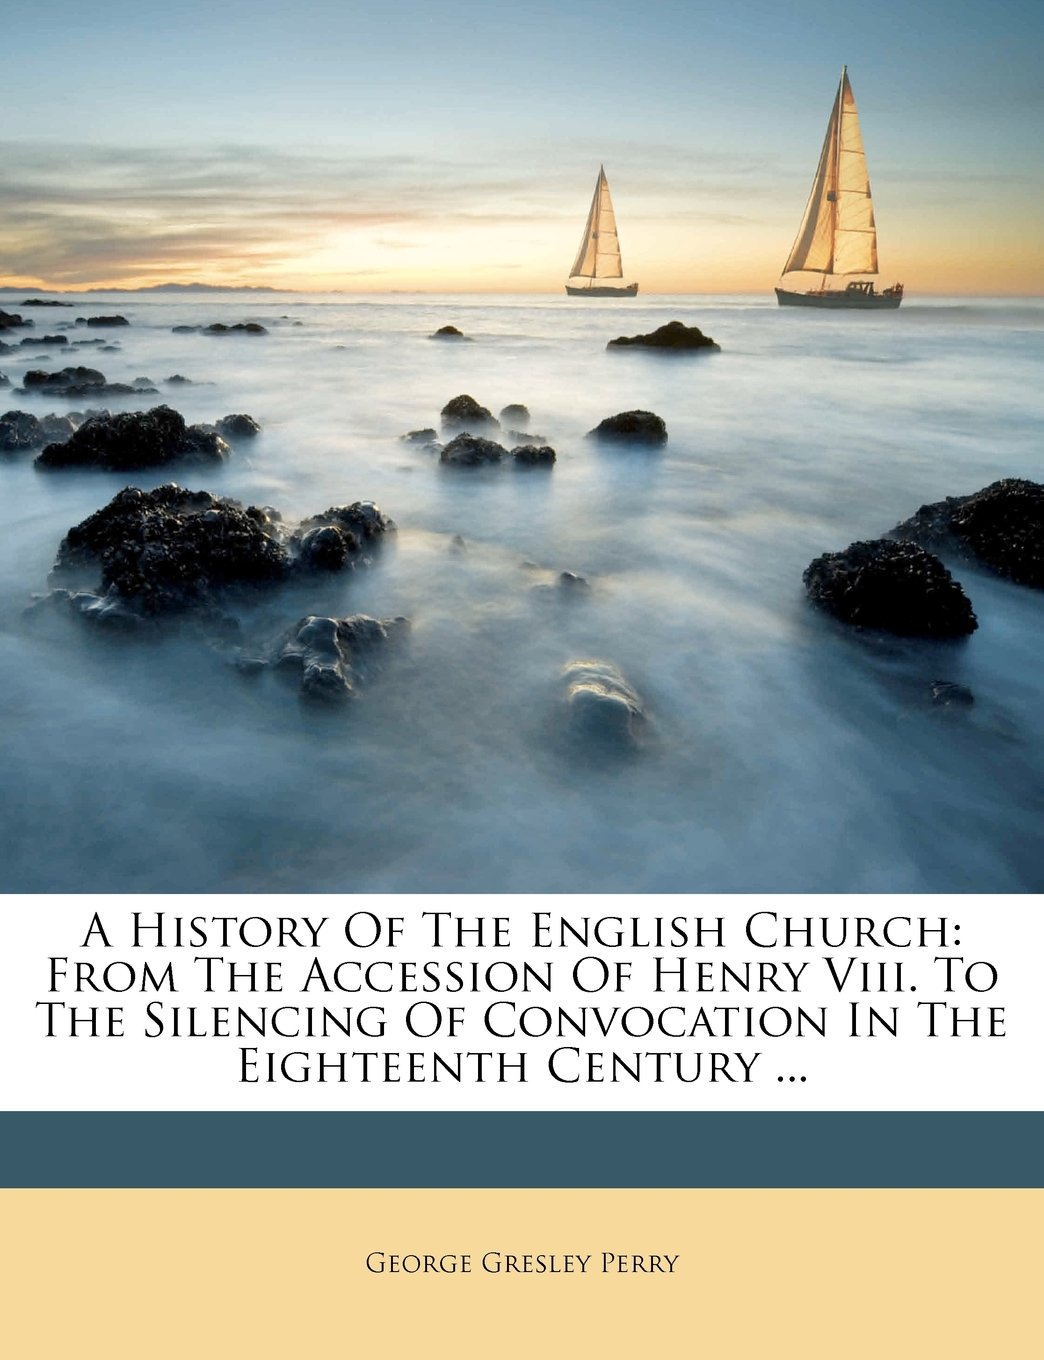 Download A History Of The English Church: From The Accession Of Henry Viii. To The Silencing Of Convocation In The Eighteenth Century ... PDF